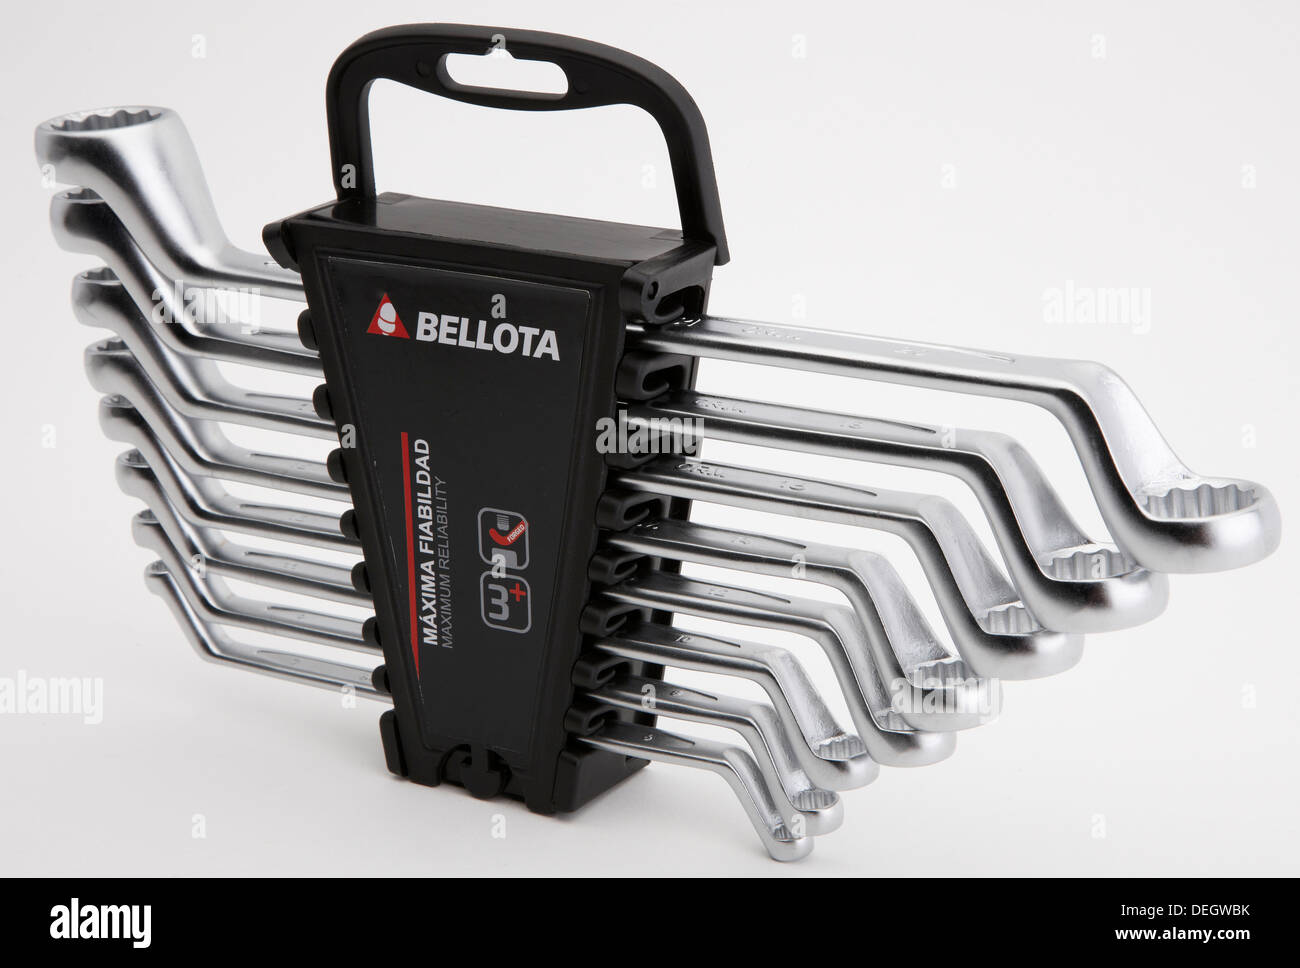 Set of ring spanners - Stock Image